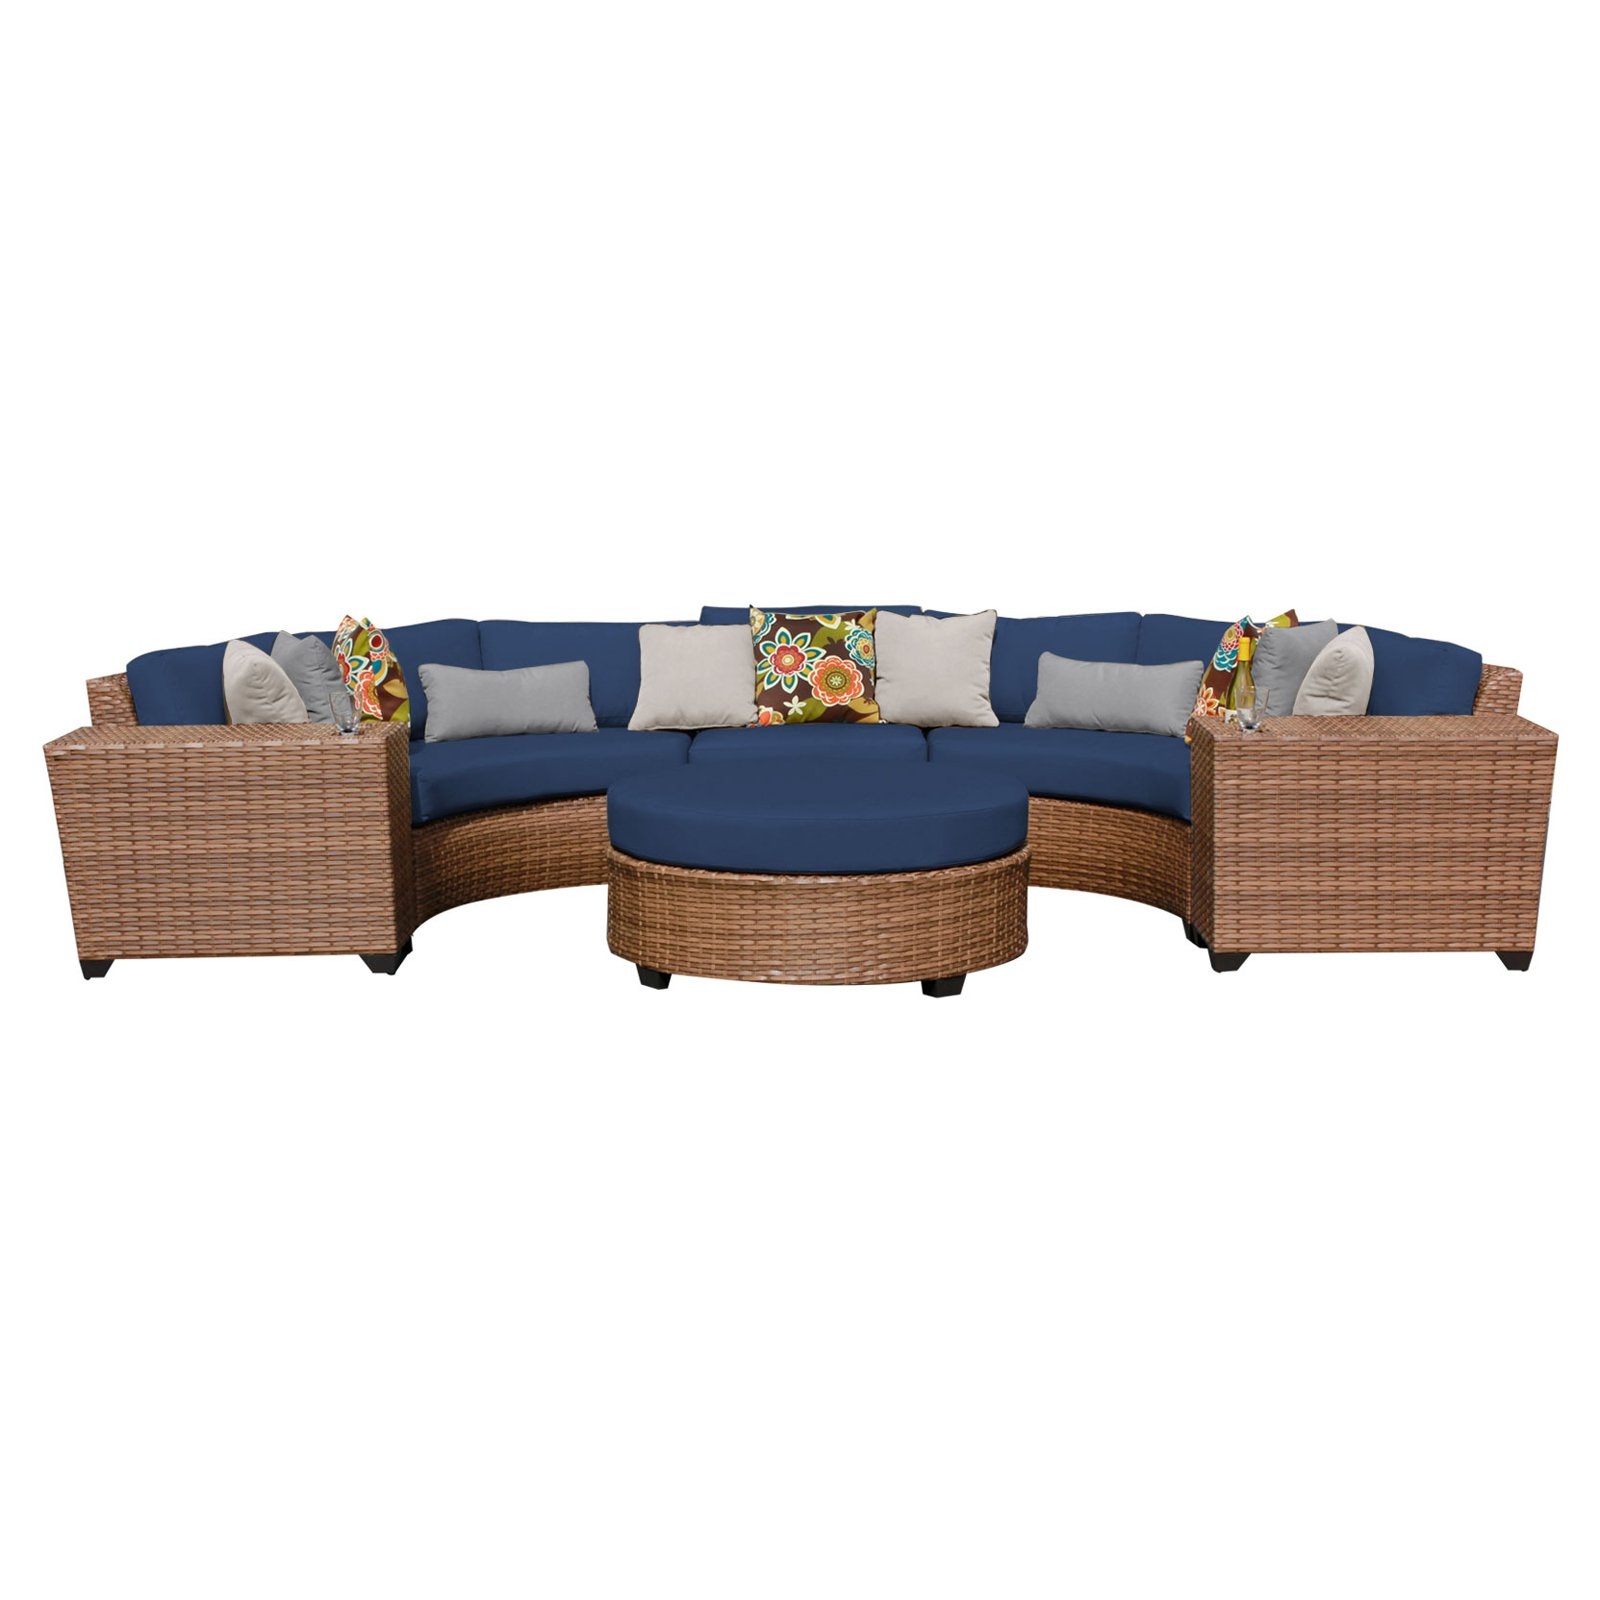 TK Classics Laguna Wicker 6 Piece Patio Conversation Set with Round Coffee Table and 2 Sets of Cushion Covers by Delacora